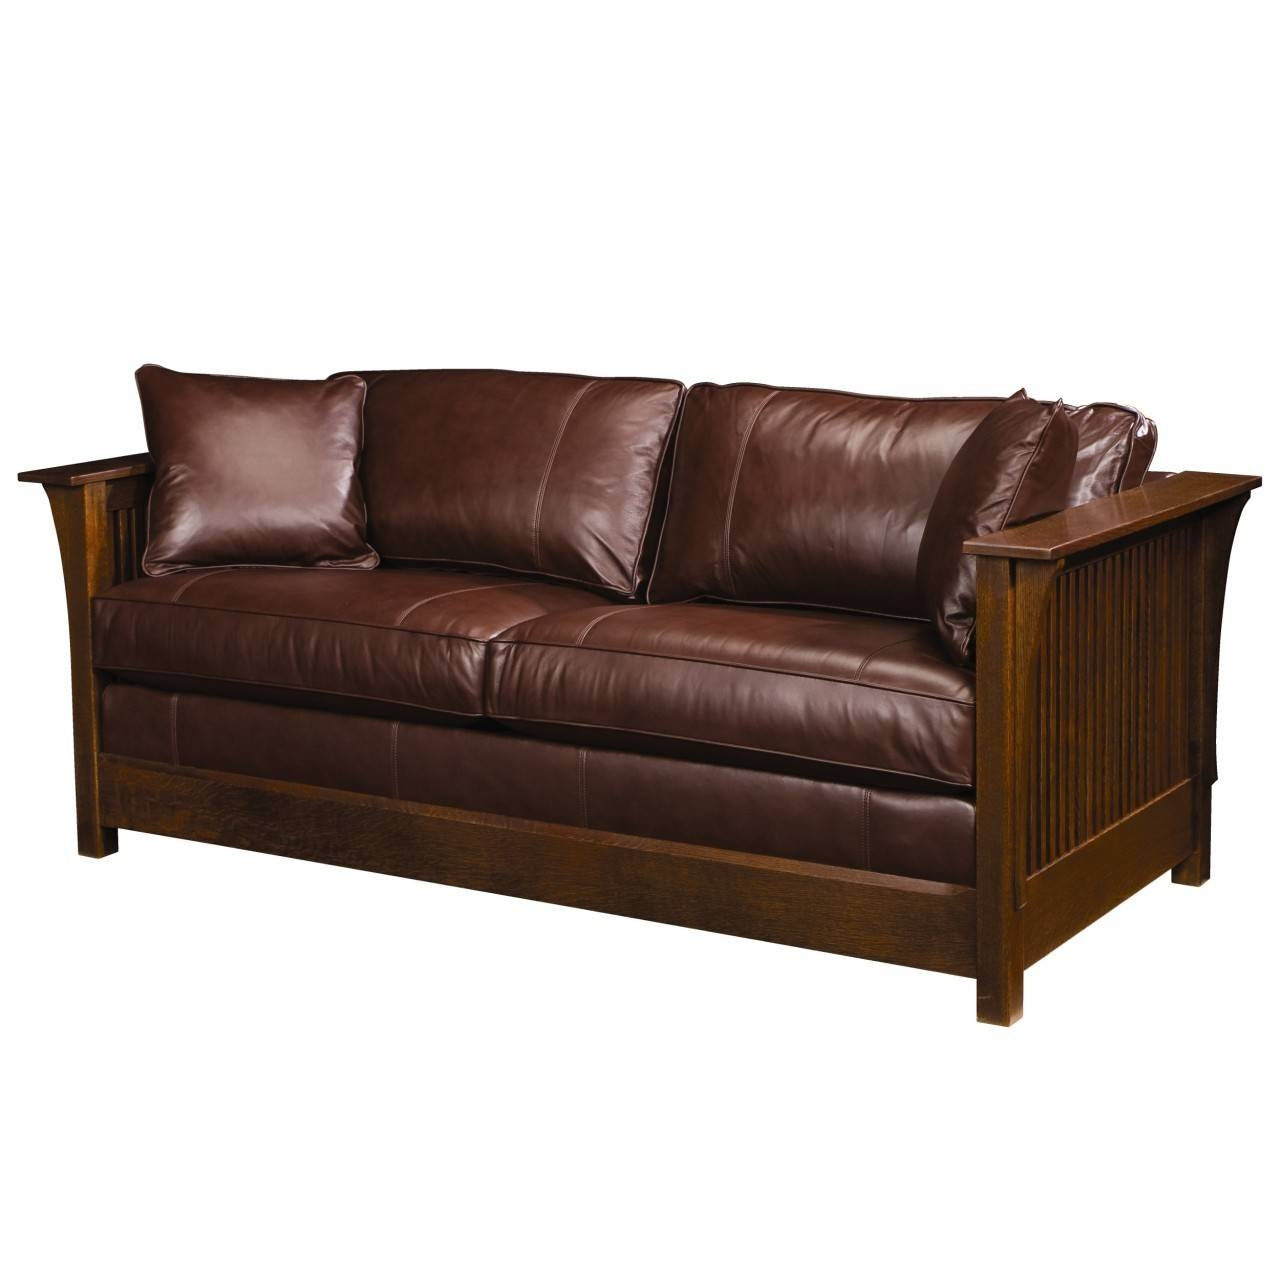 Leather Sofa Sleepers Queen Size – Tourdecarroll In Sofa Sleepers Queen Size (View 9 of 30)